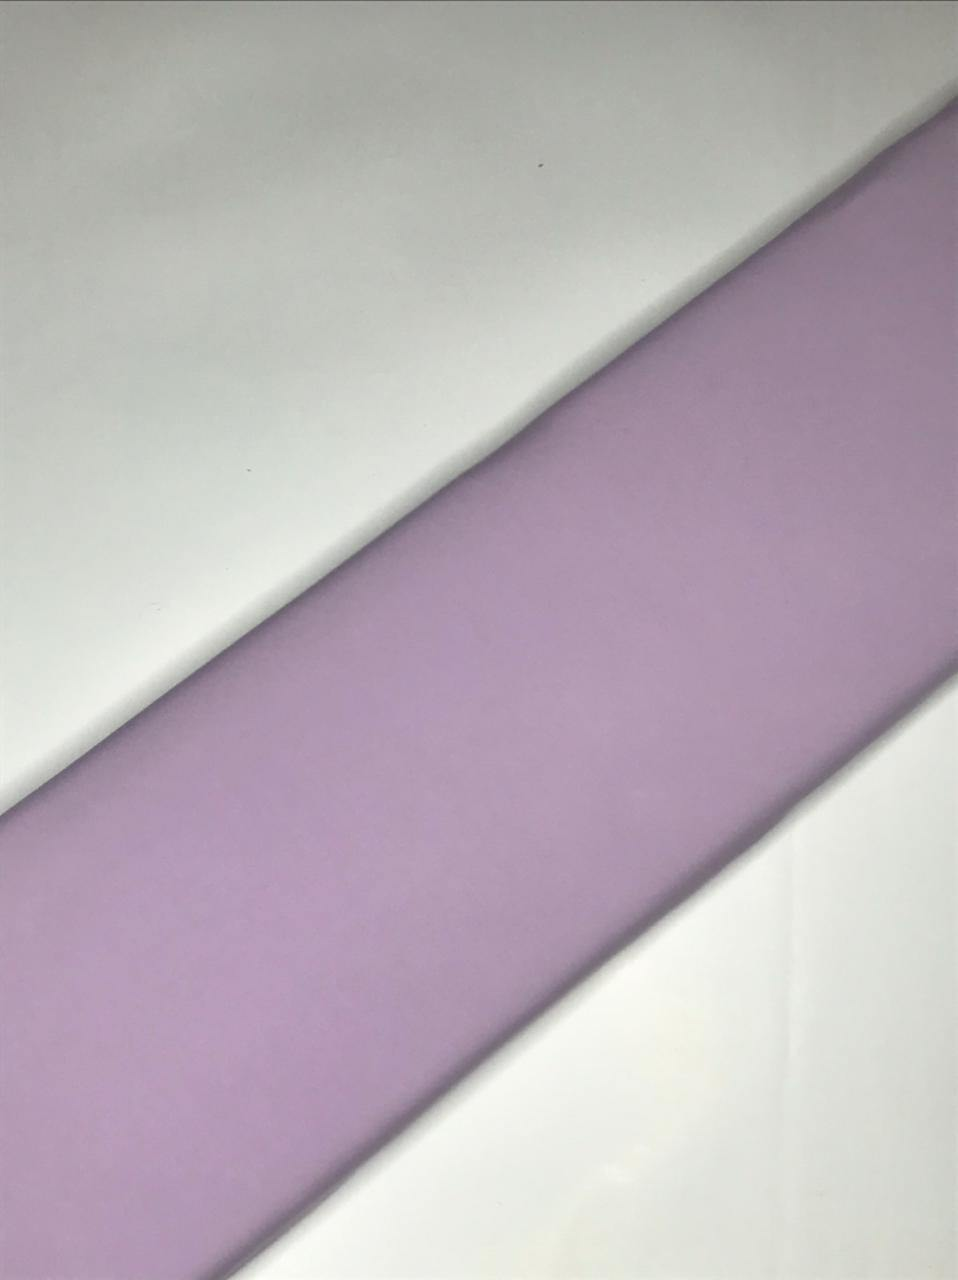 Knitted Stretchable Lilac ITY Fabric (Width - 58 Inches)